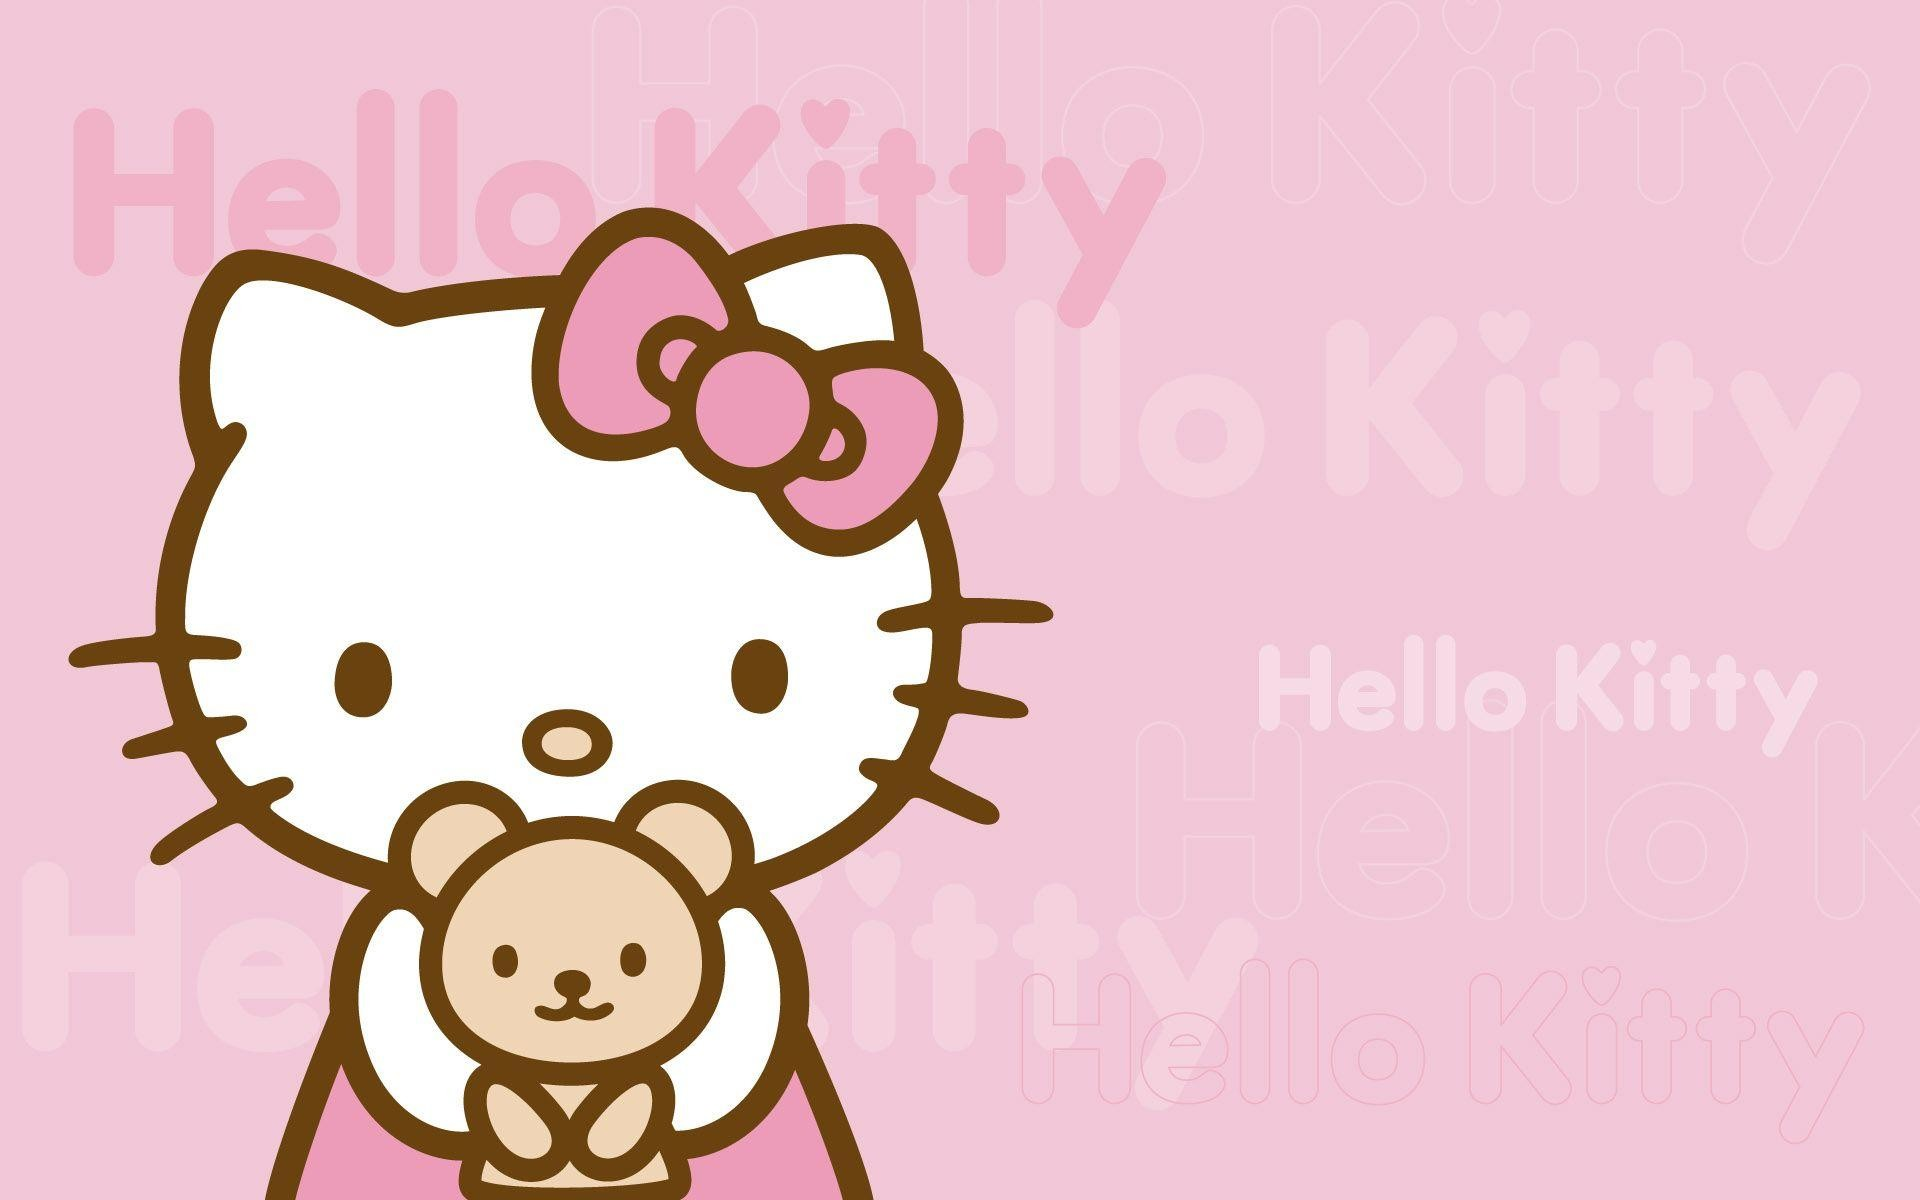 Must see Wallpaper Hello Kitty Glitter - 781254-glitter-hello-kitty-backgrounds-for-computers-1920x1200-for-computer  Pic_691924.jpg